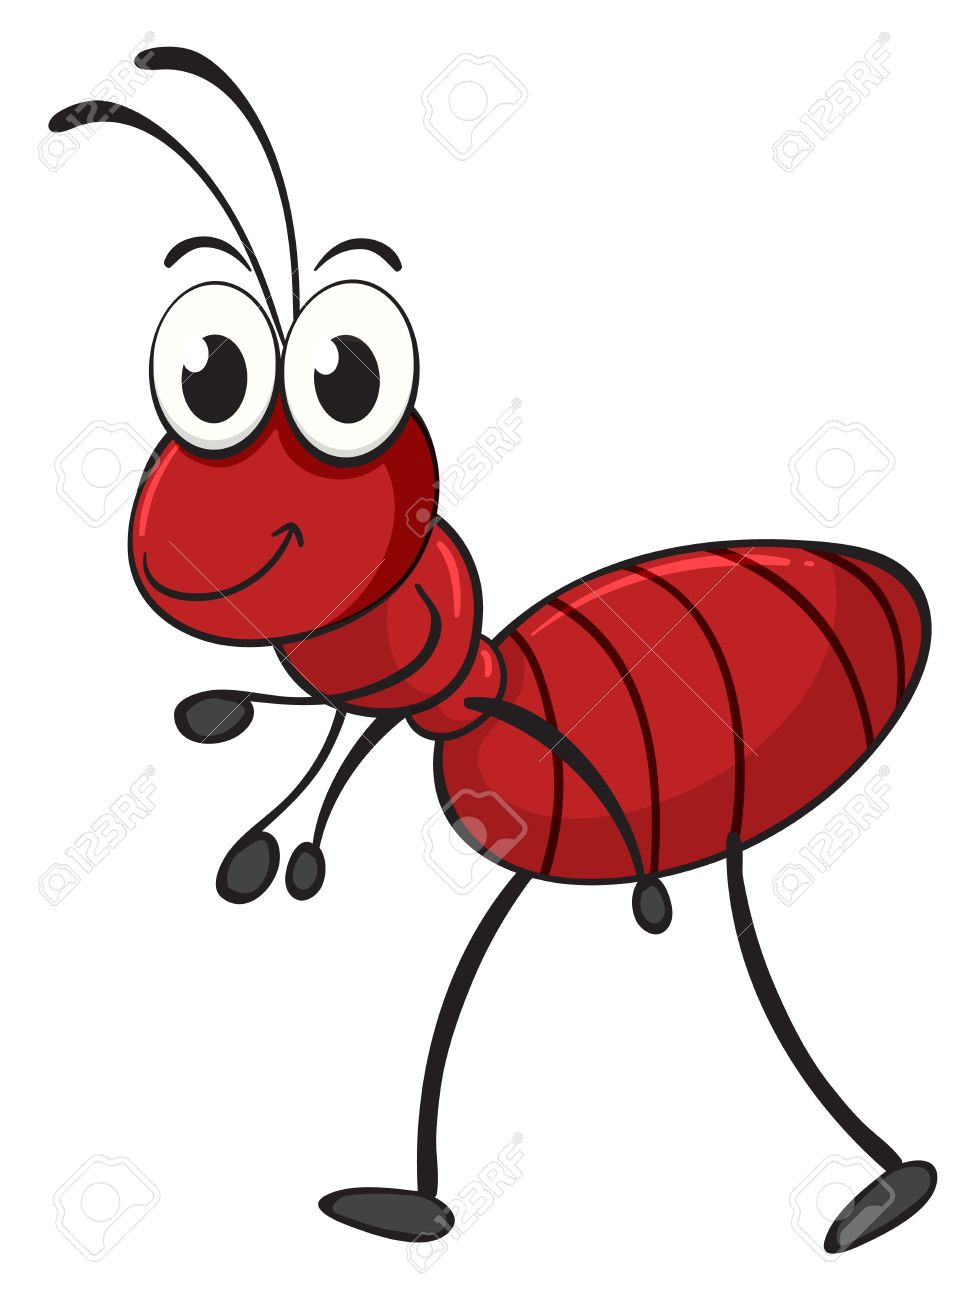 An ant illustration of an ant on a clipart.